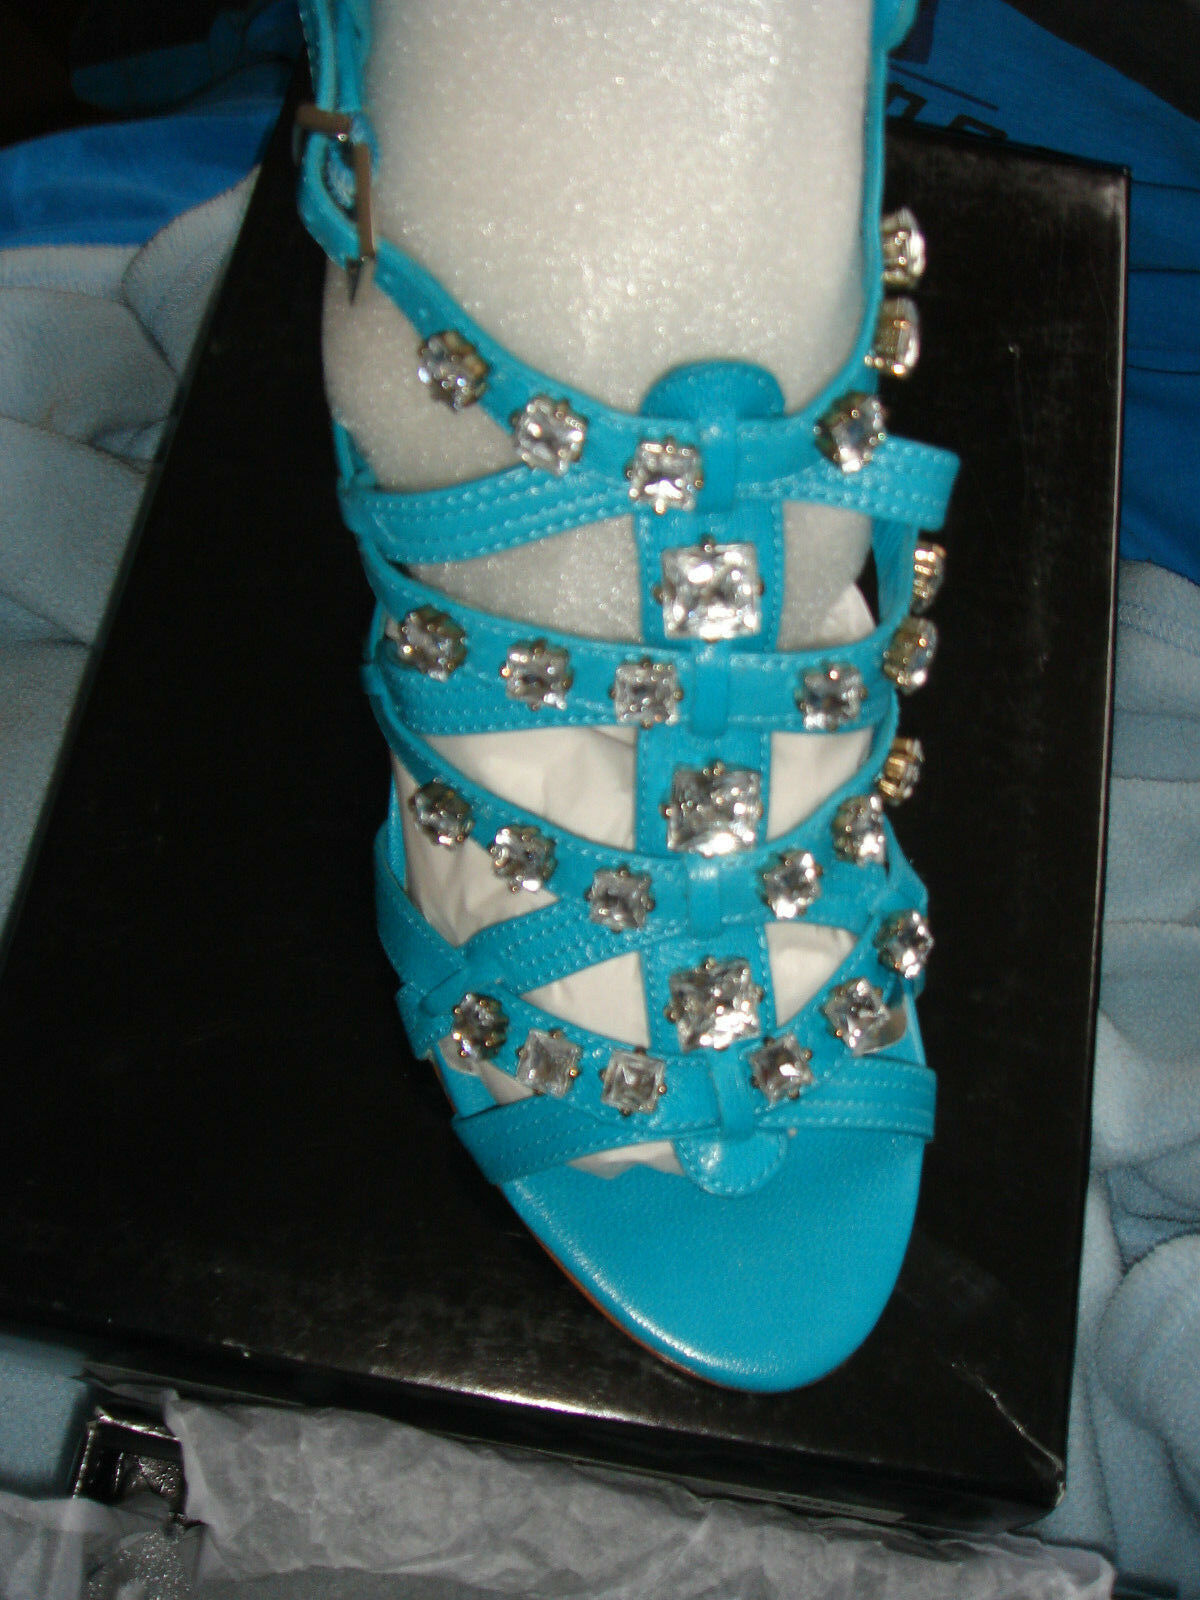 Karen Karen Karen Millen Aqua Turquoise leather jeweled gems crystal Sandals shoes 41 BNIB b3cb5d